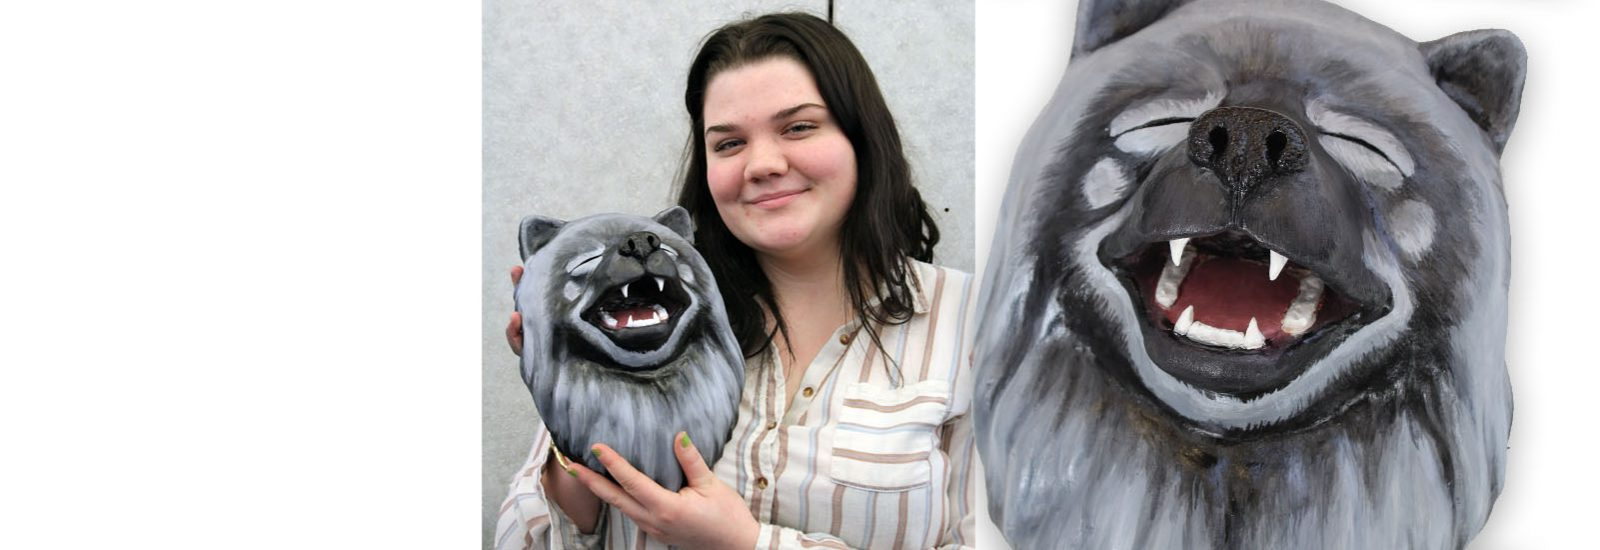 Senior's sculpture selected for juried art show